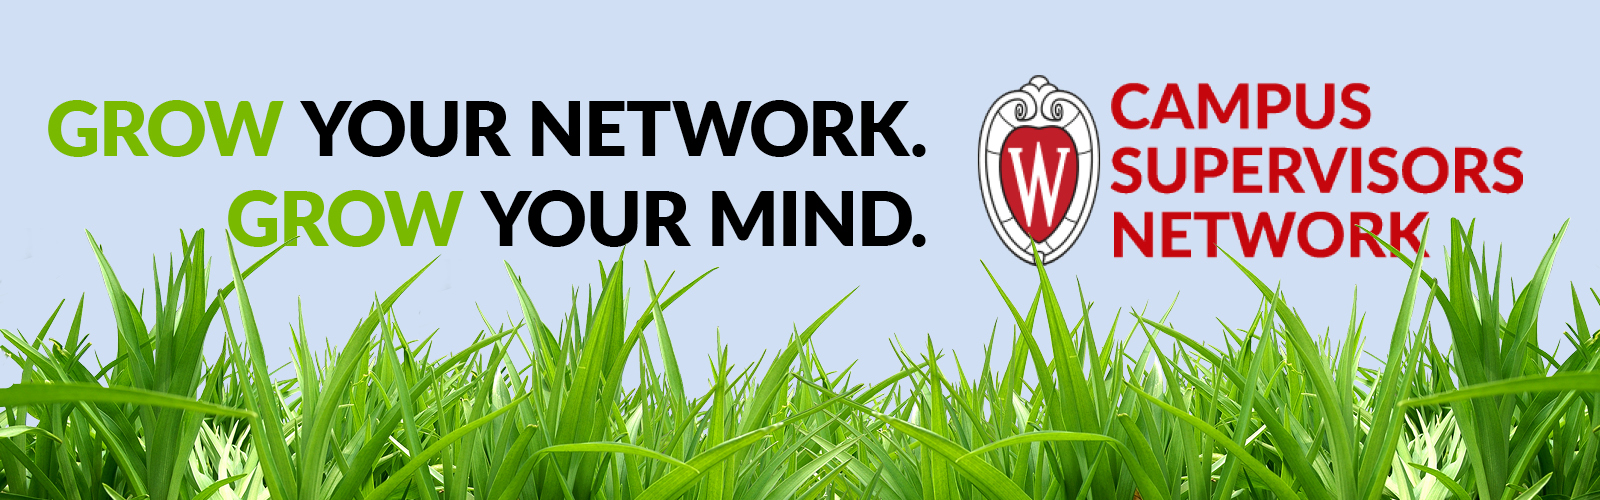 Grow Your Network Grow Your Mind.